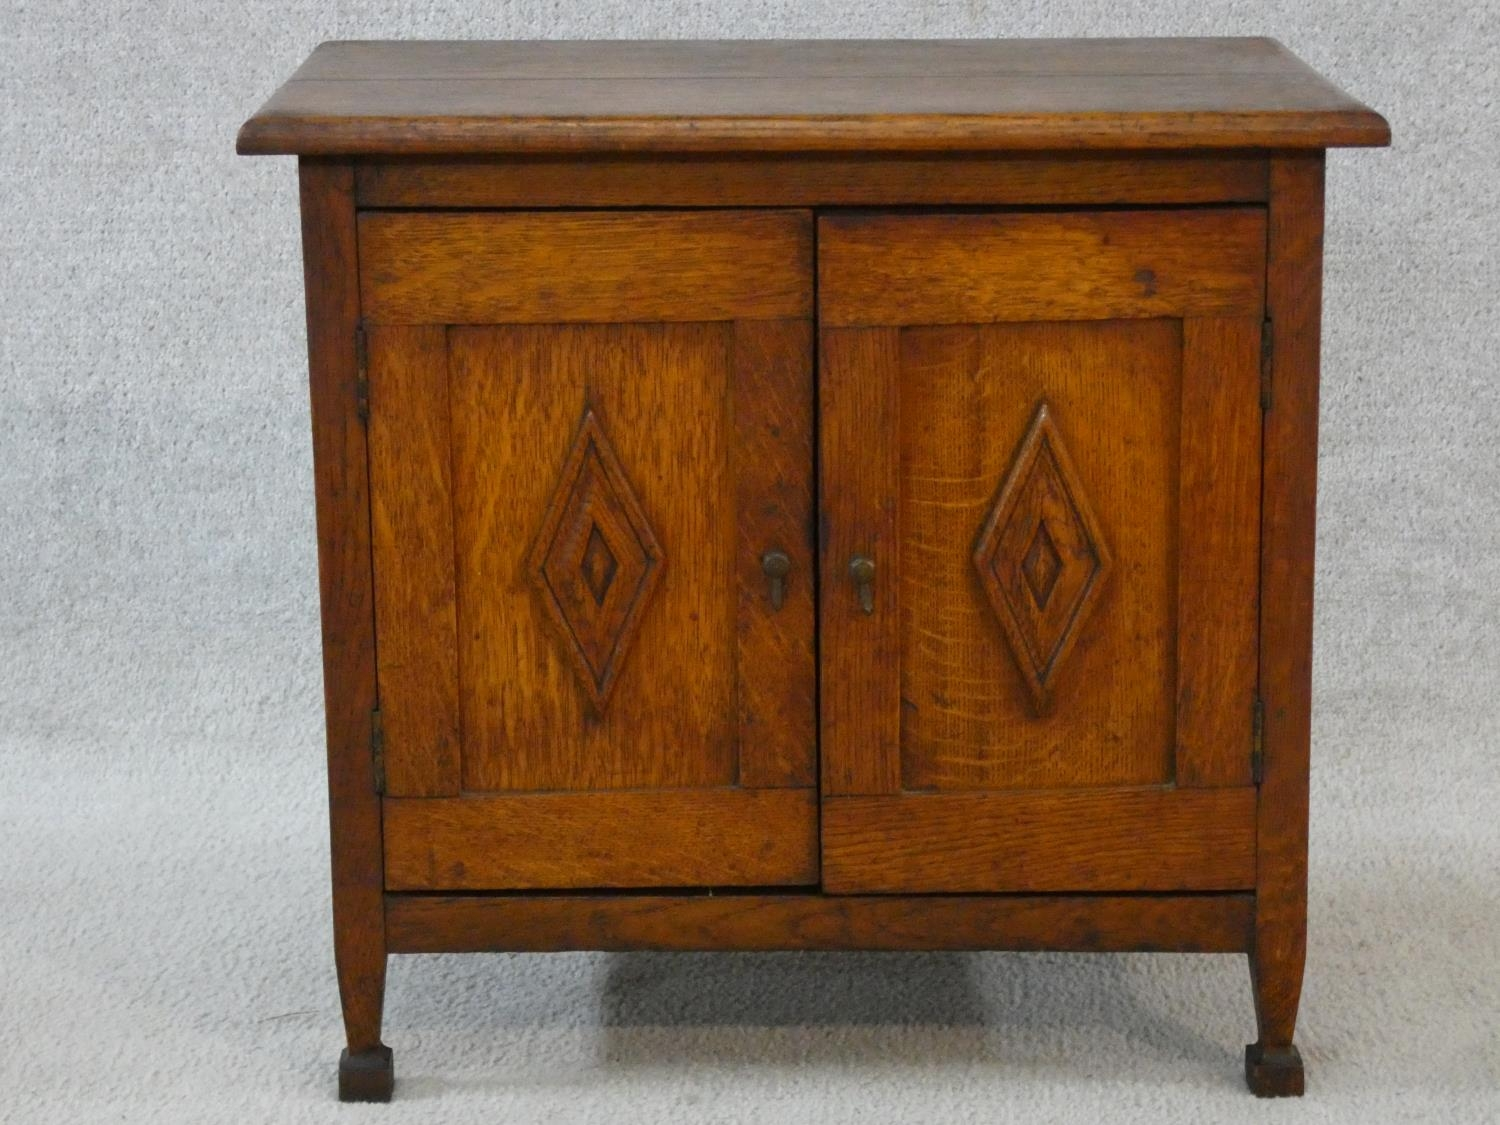 An early 20th century country oak style side cabinet with carved panel doors on squat square